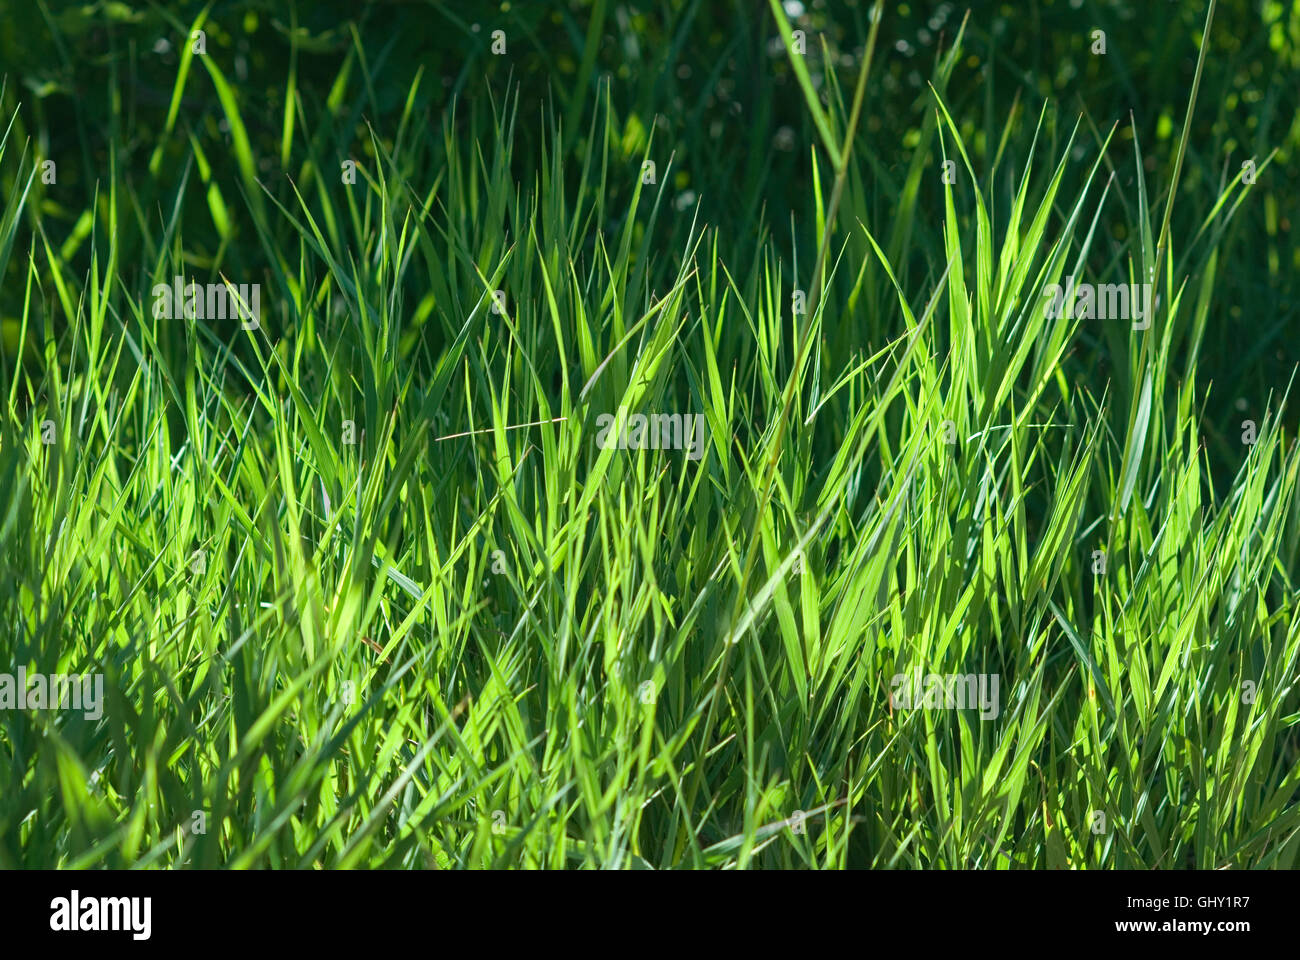 Blades of grass - Stock Image